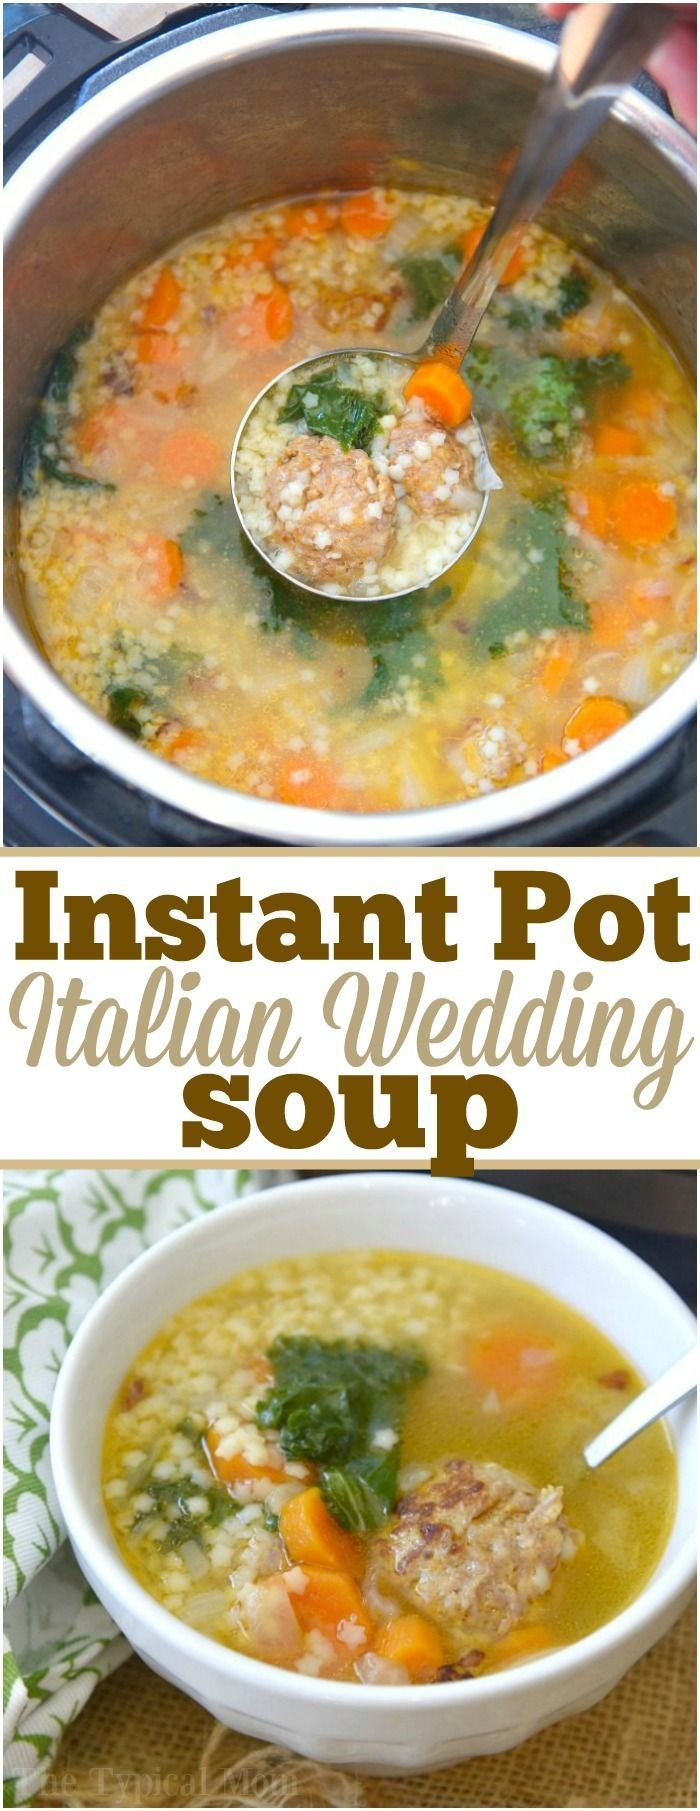 This easy Instant Pot Italian Wedding Soup is perfect year